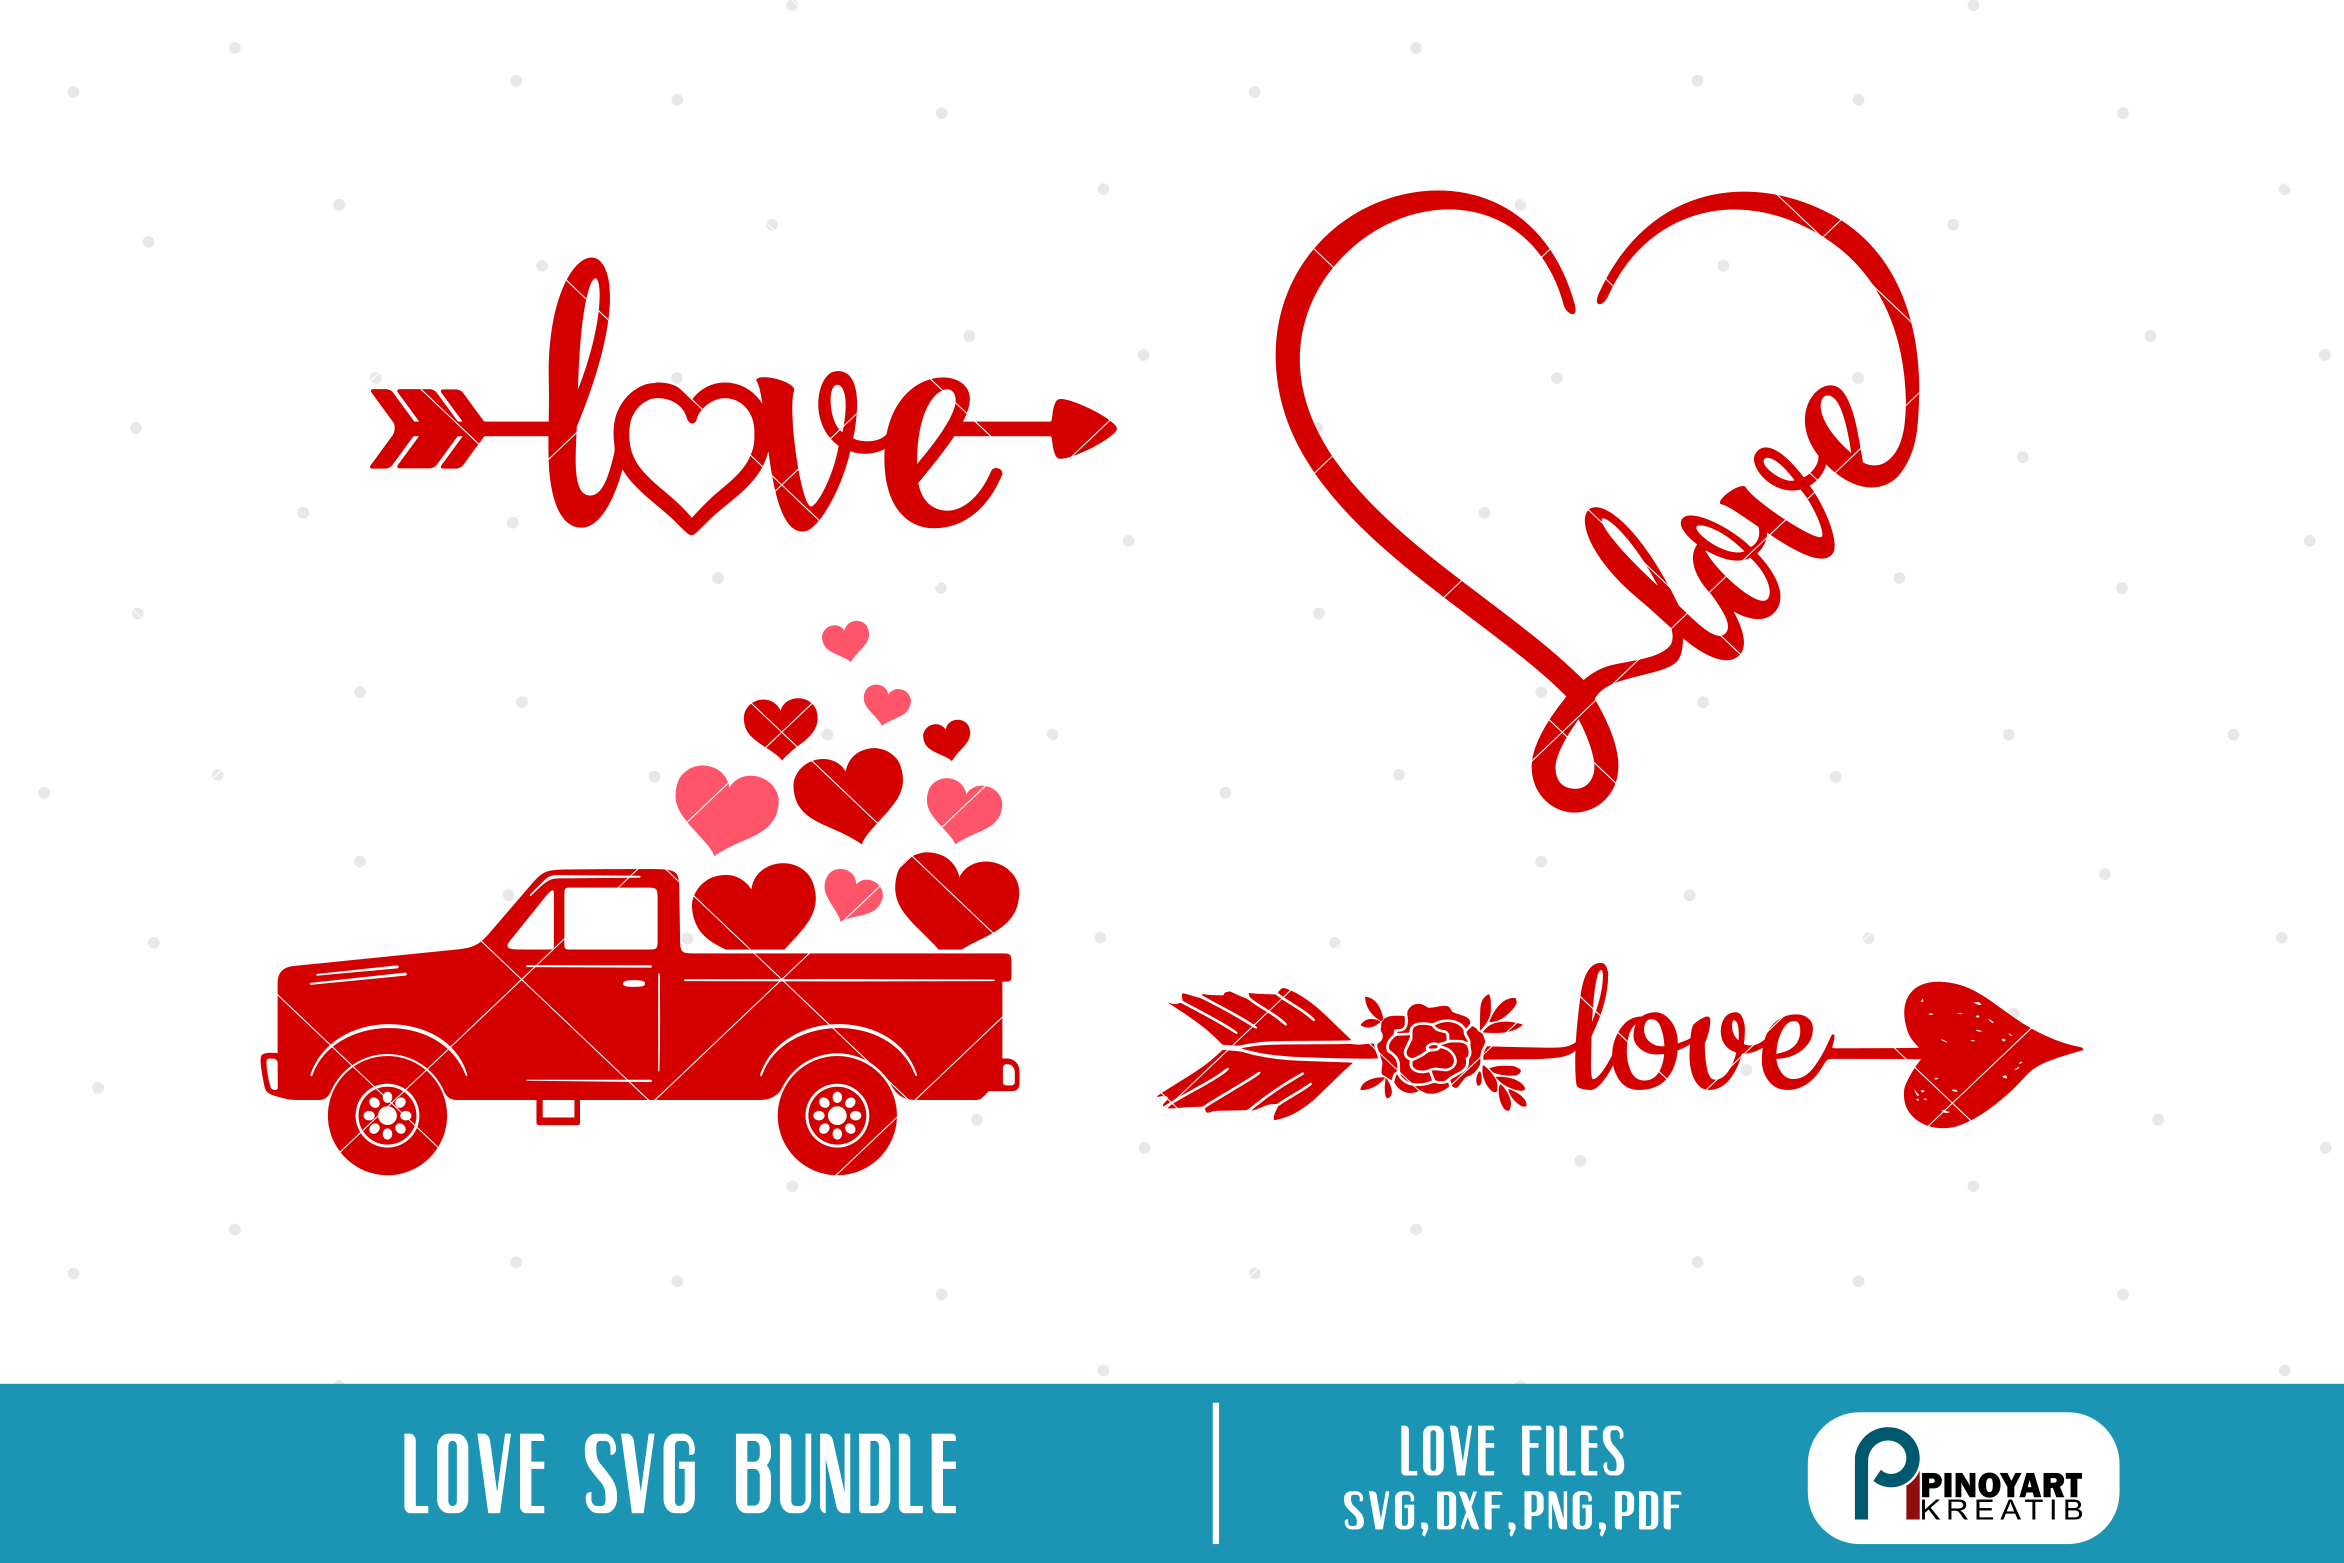 Download Free Love Bundle Graphic By Pinoyartkreatib Creative Fabrica for Cricut Explore, Silhouette and other cutting machines.